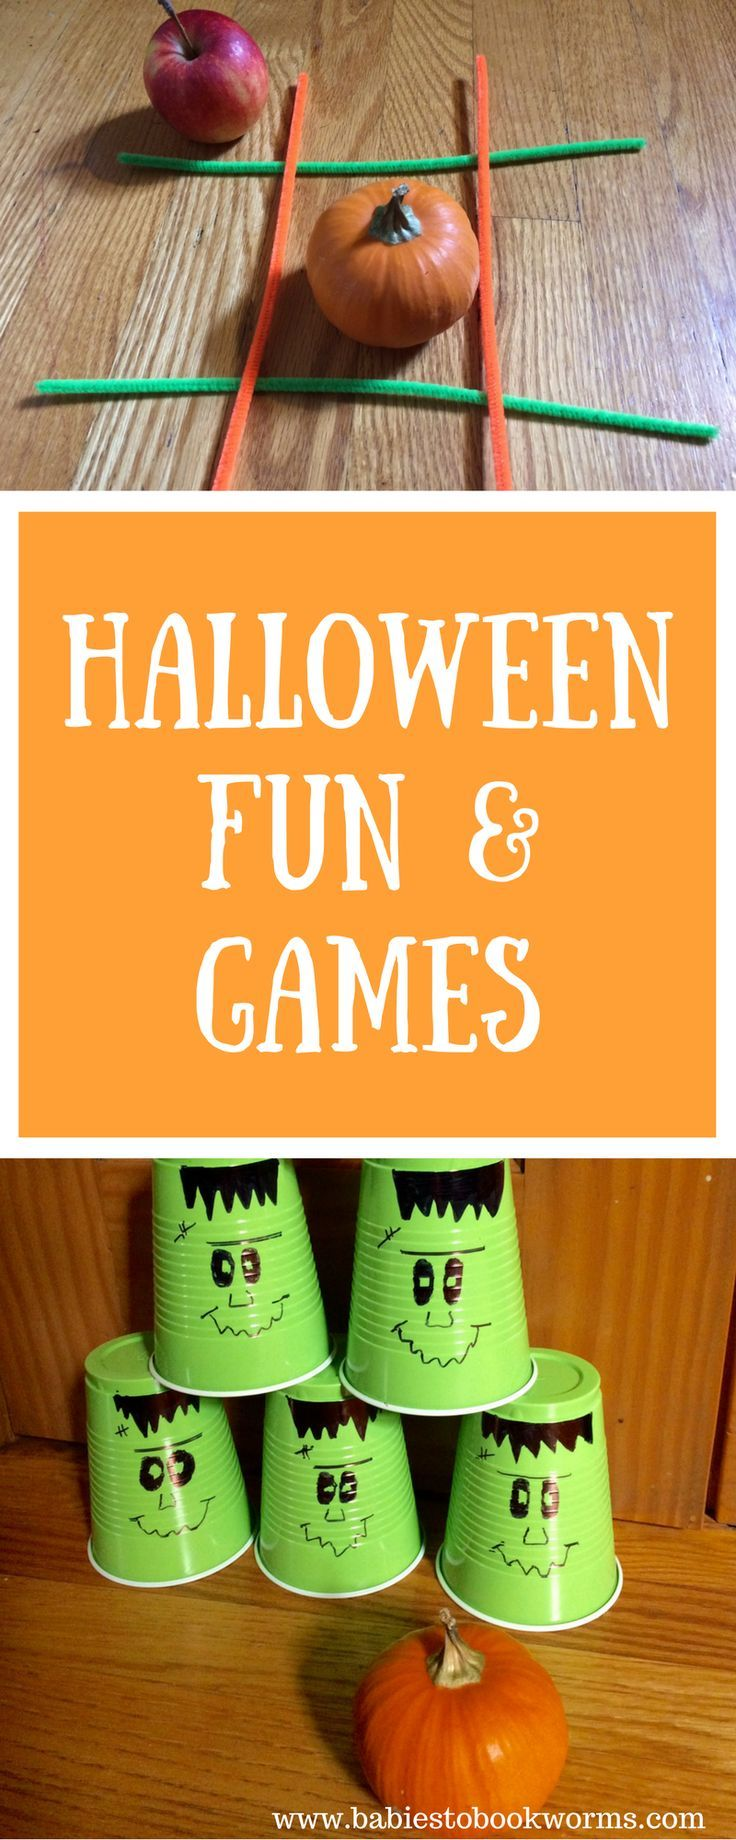 Get kids excited for Halloween with these family friendly games & learning activities!     #HalloweenGames #HalloweenLearning #HalloweenActivities #ToddlerHalloween